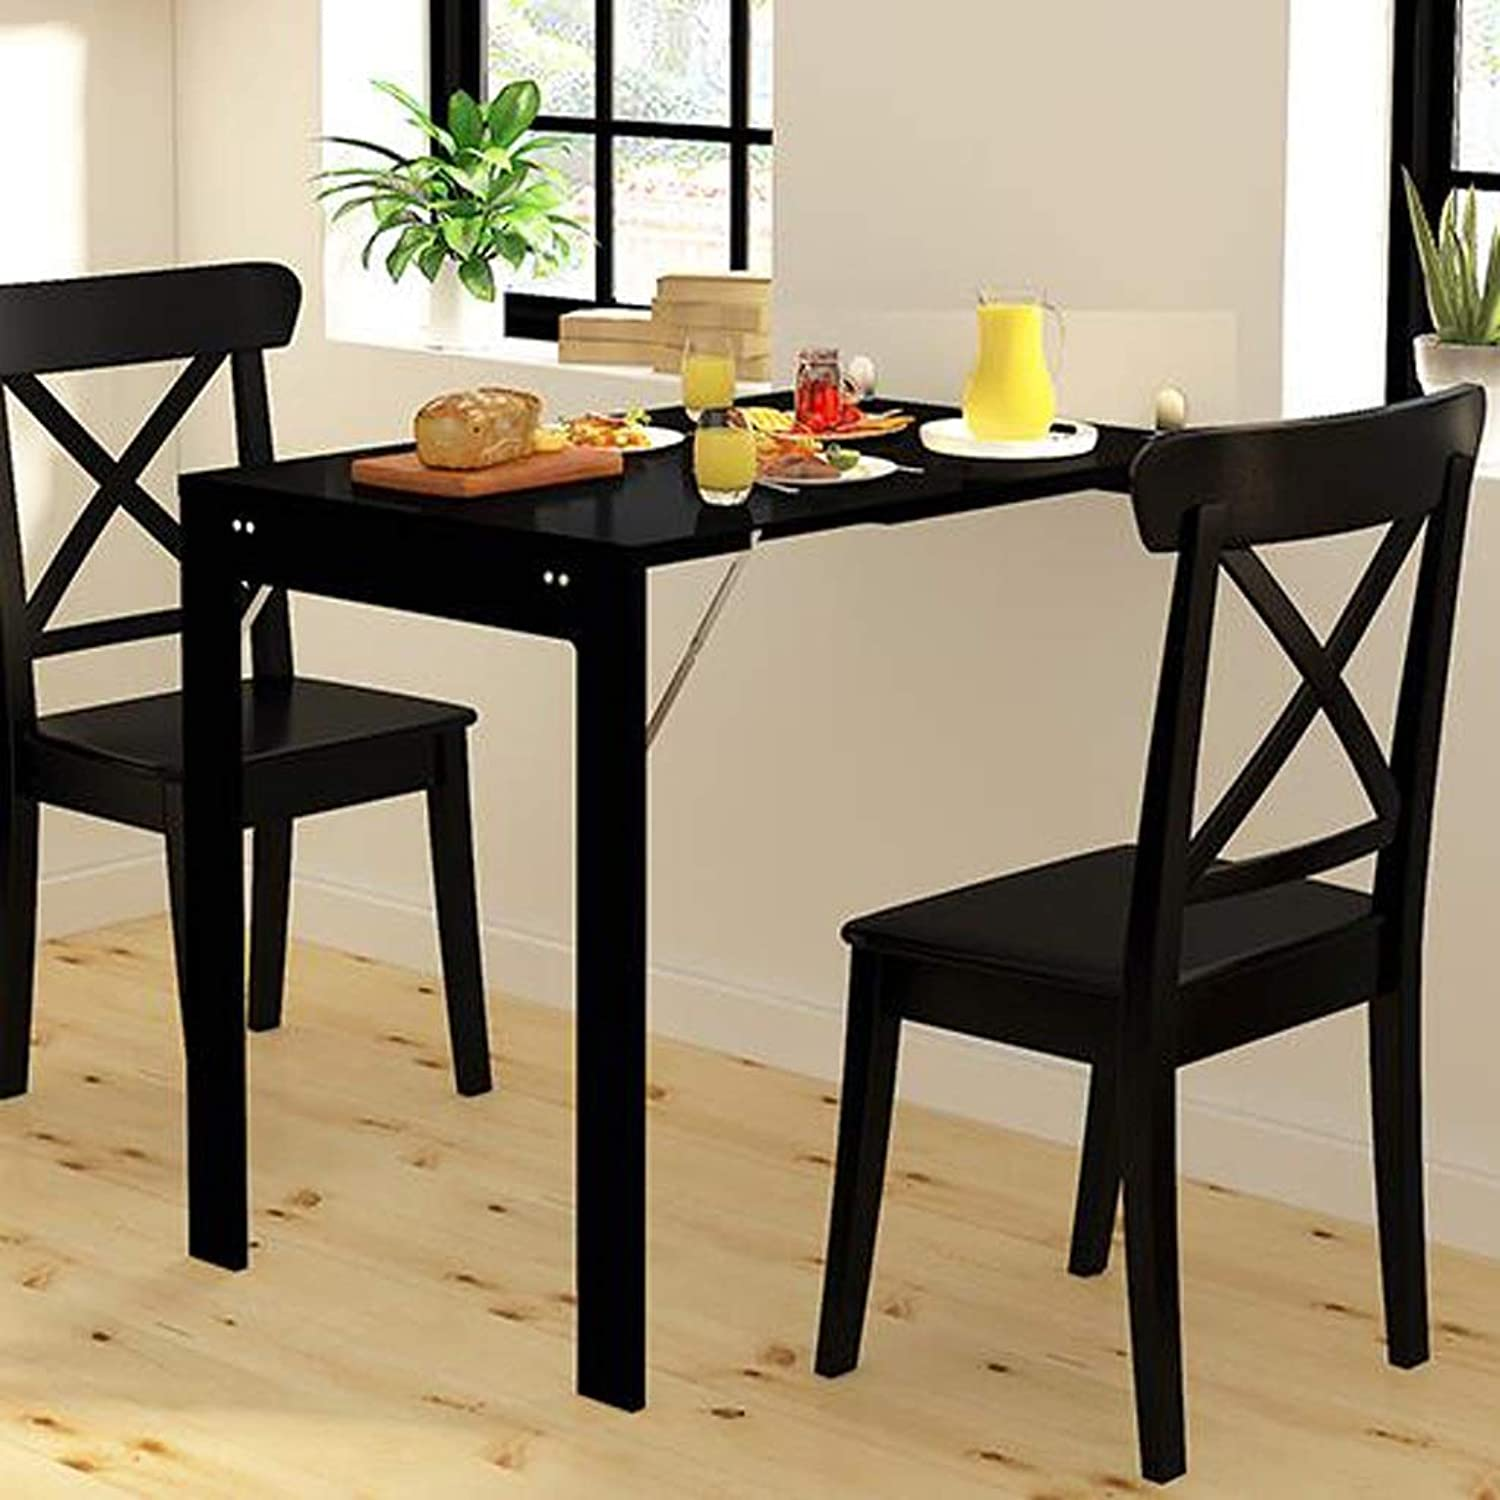 SHWSM Wall-Mounted Folding Table, Small-Sized Home Telescopic Invisible Small Dining Table, with Photo Frame - Super Tough, Bearing Up to 150kg Folding Table (color   Black)